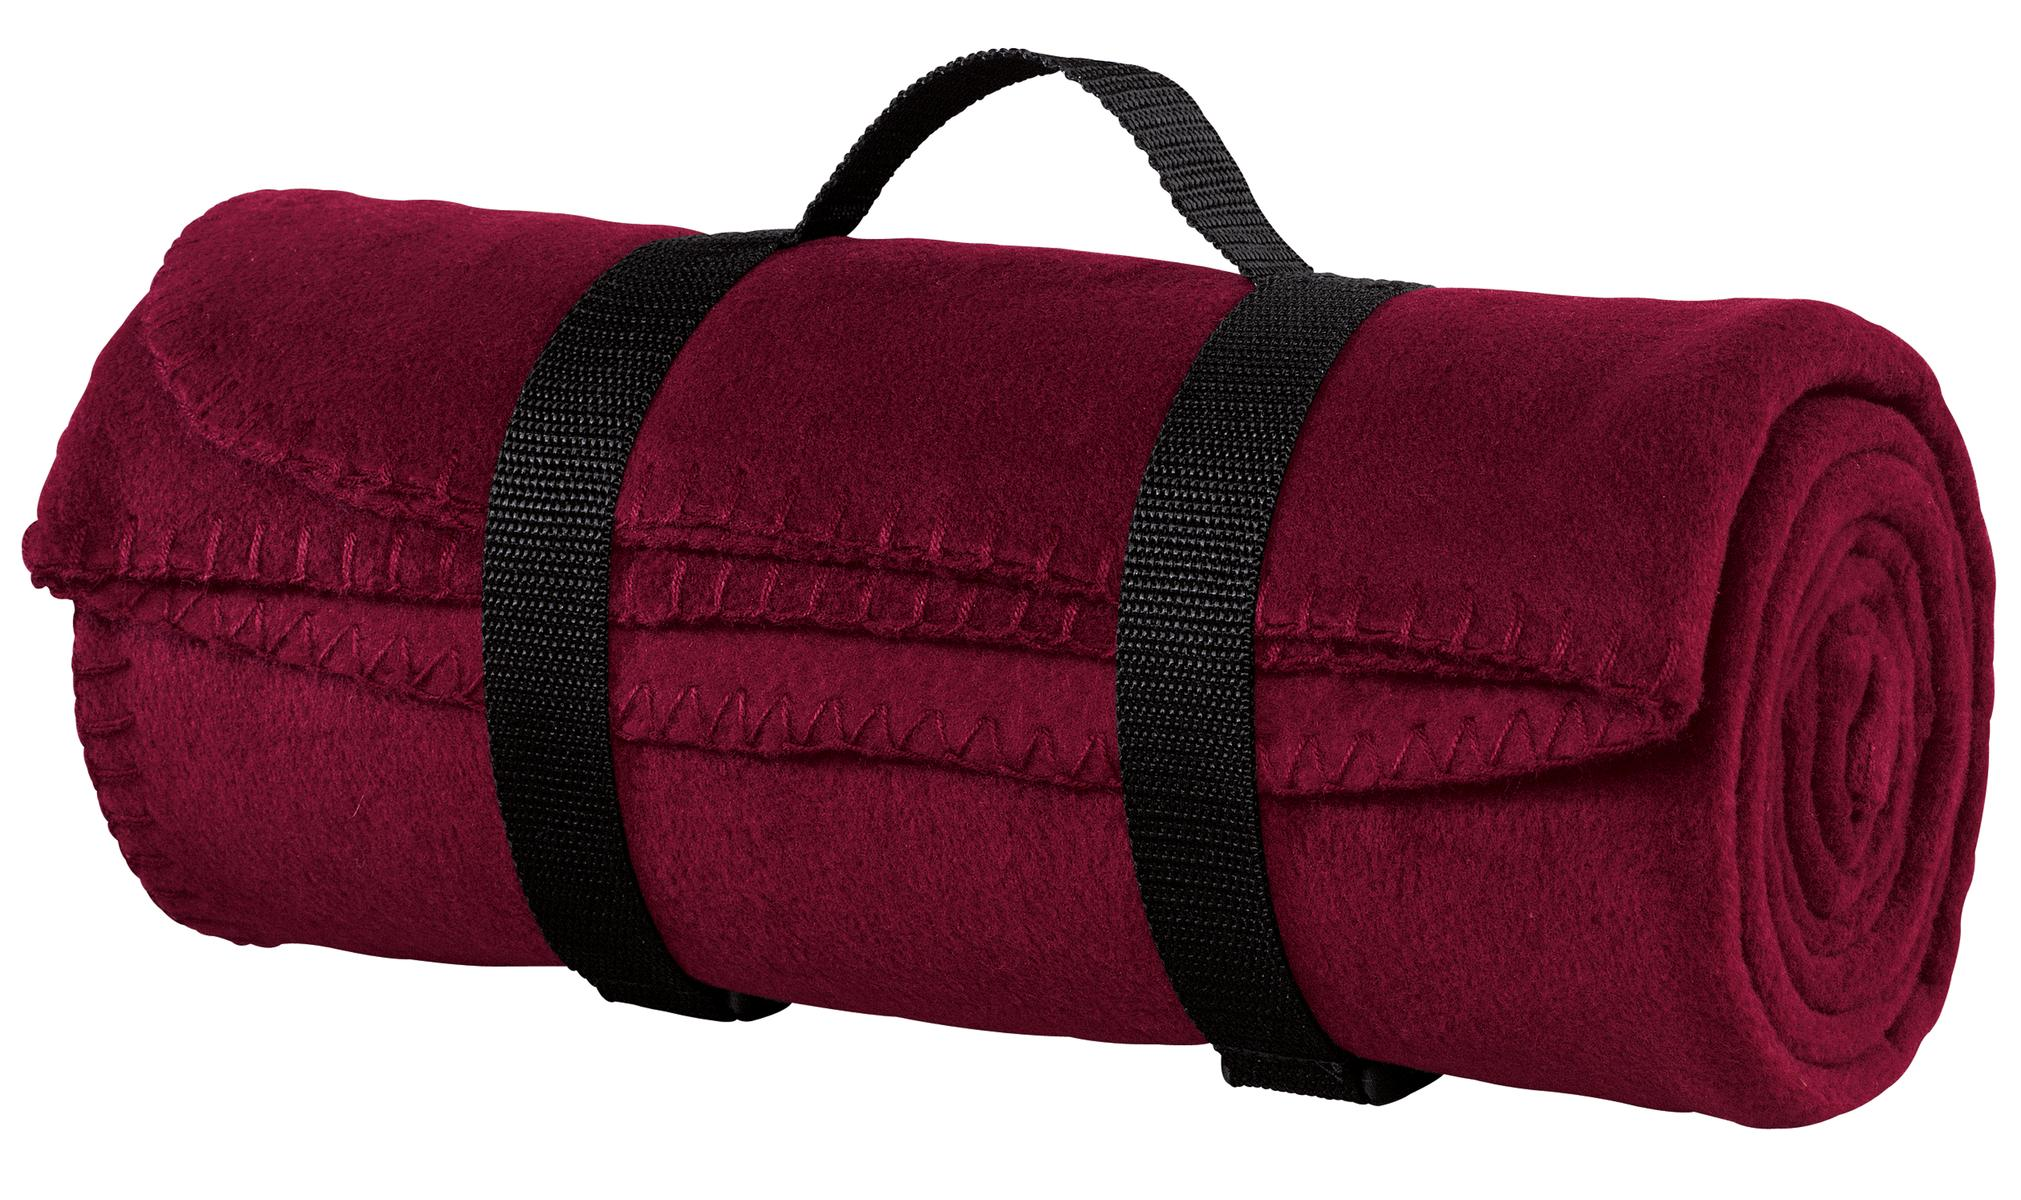 Port Authority ®  - Value Fleece Blanket with Strap.  BP10 - Maroon